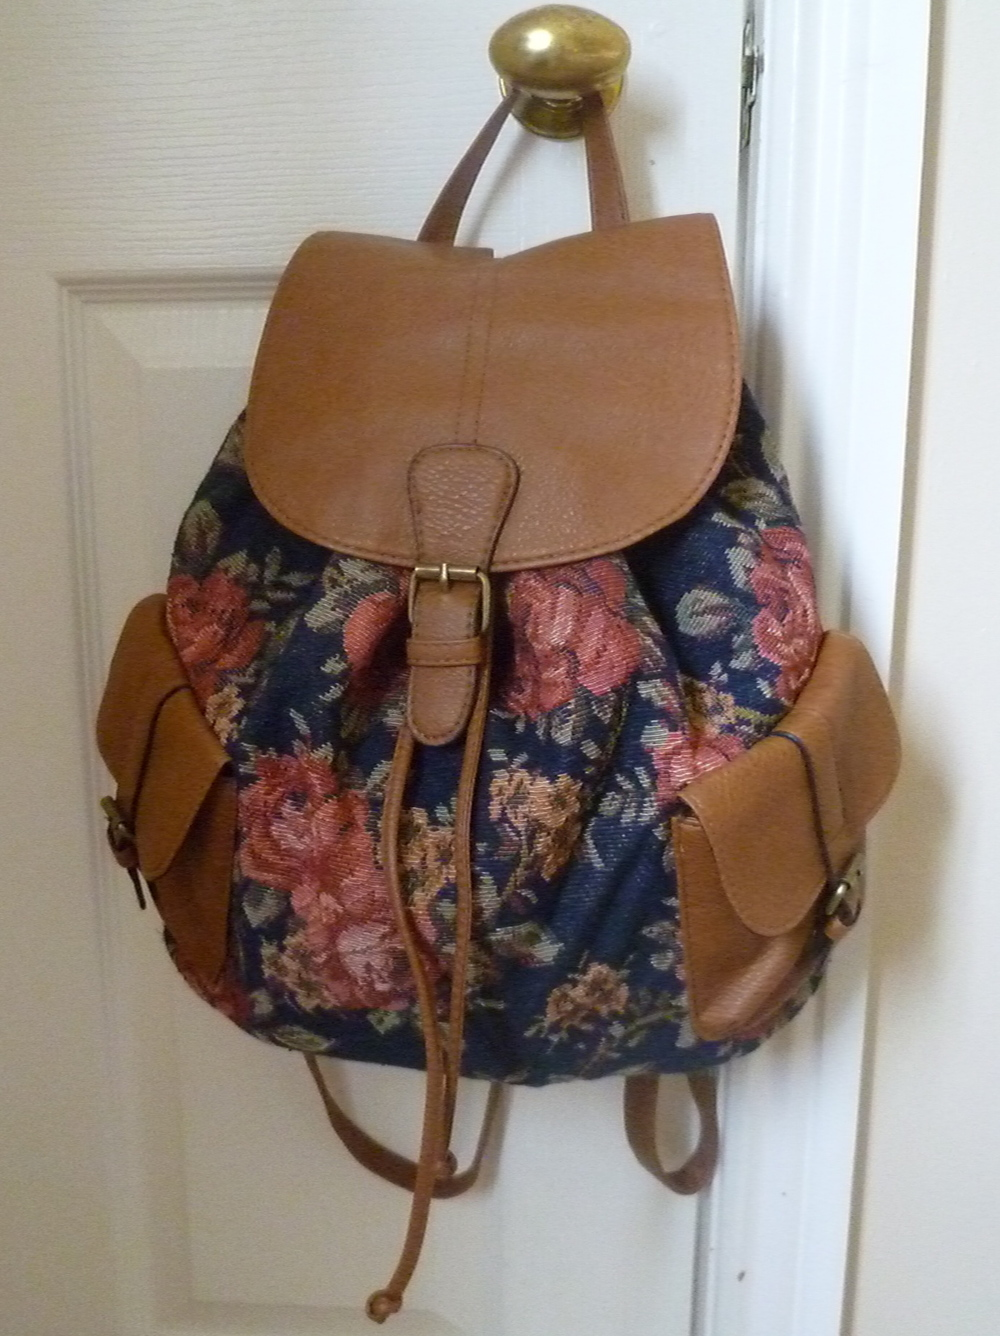 A fun backpack is 100% necessary for college, this cute floral one was €10 from Pennys/ Primark - Bargain!